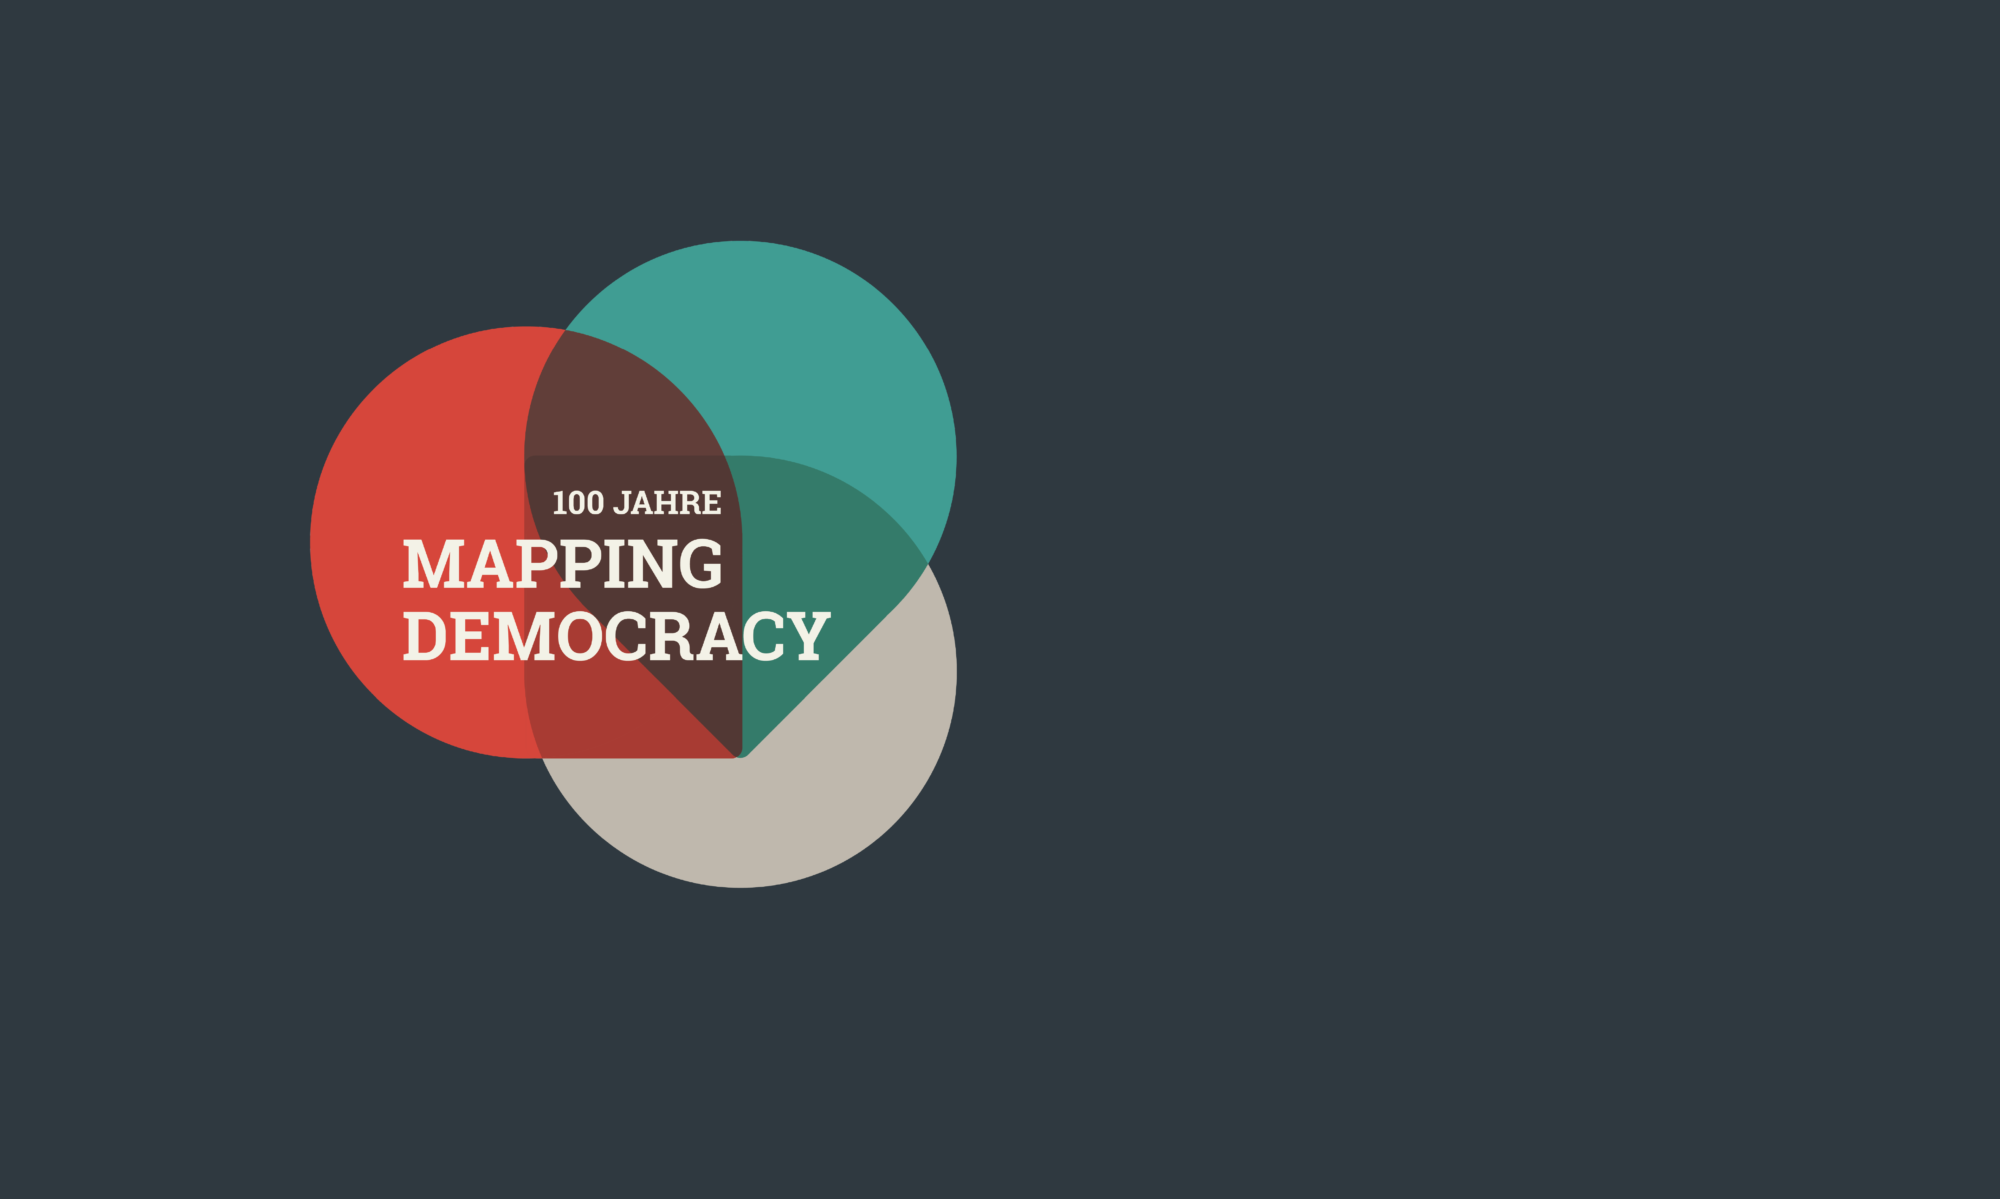 Mapping Democracy